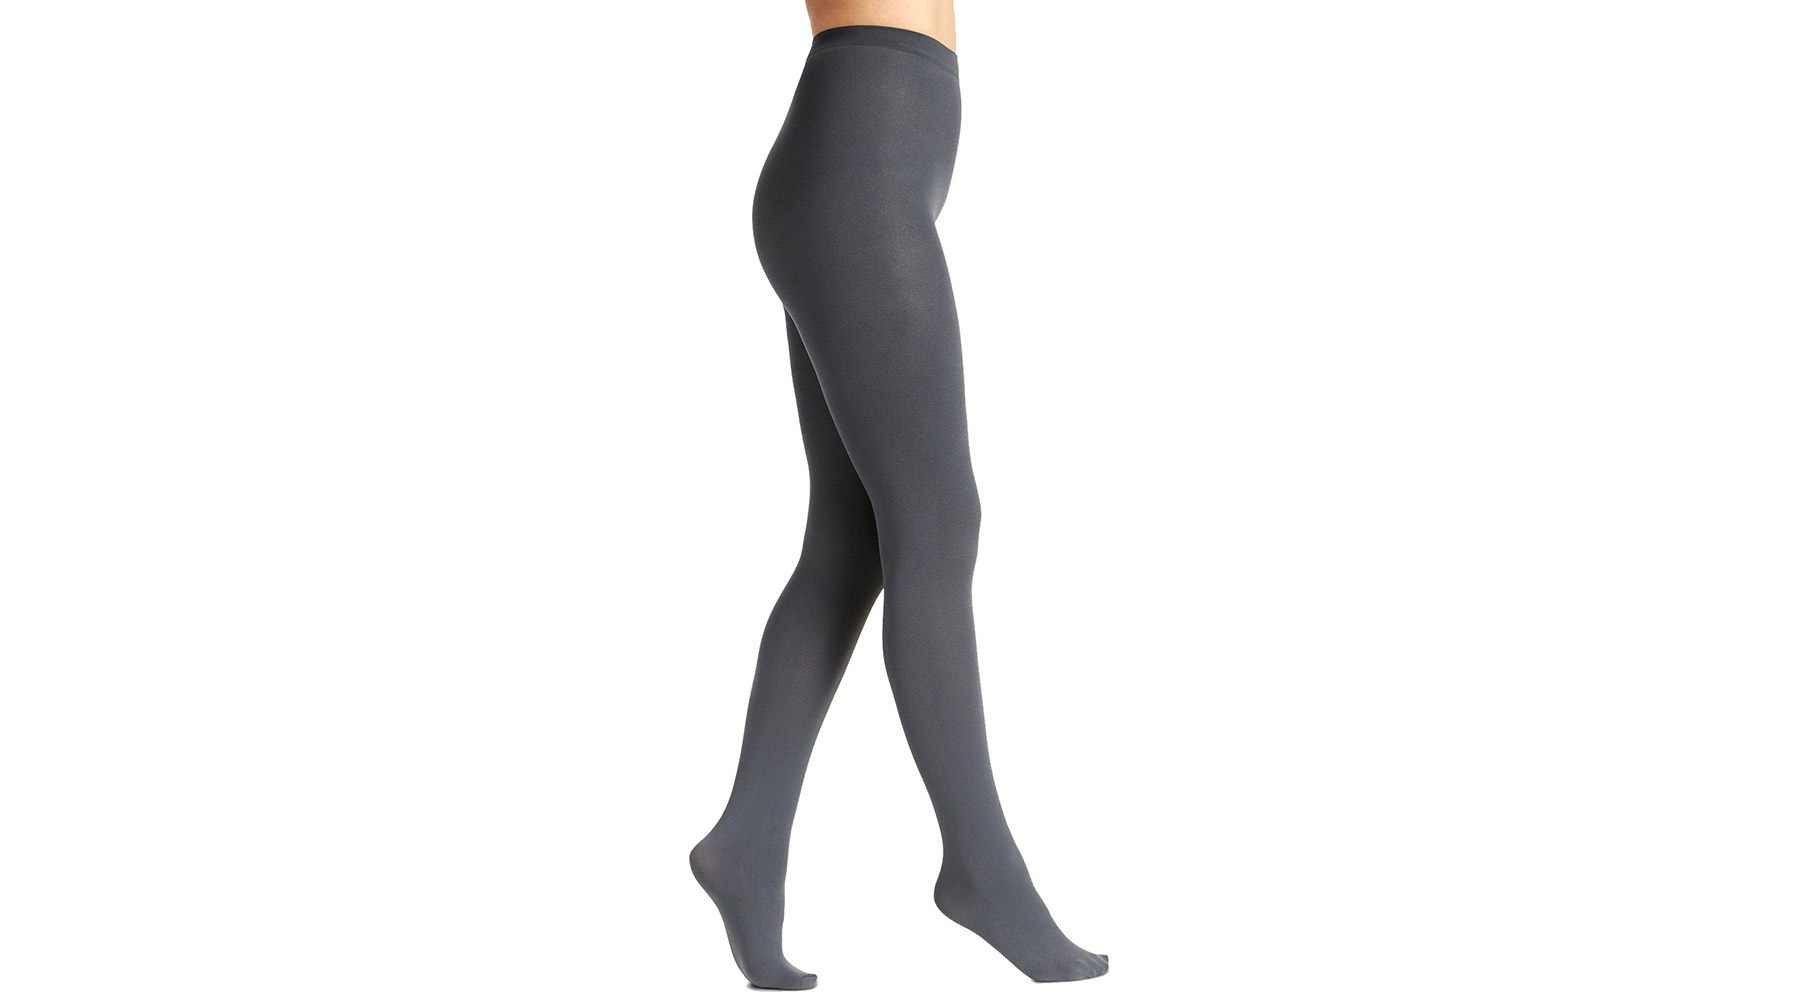 Berkshire Women's Hose Fleece Tights